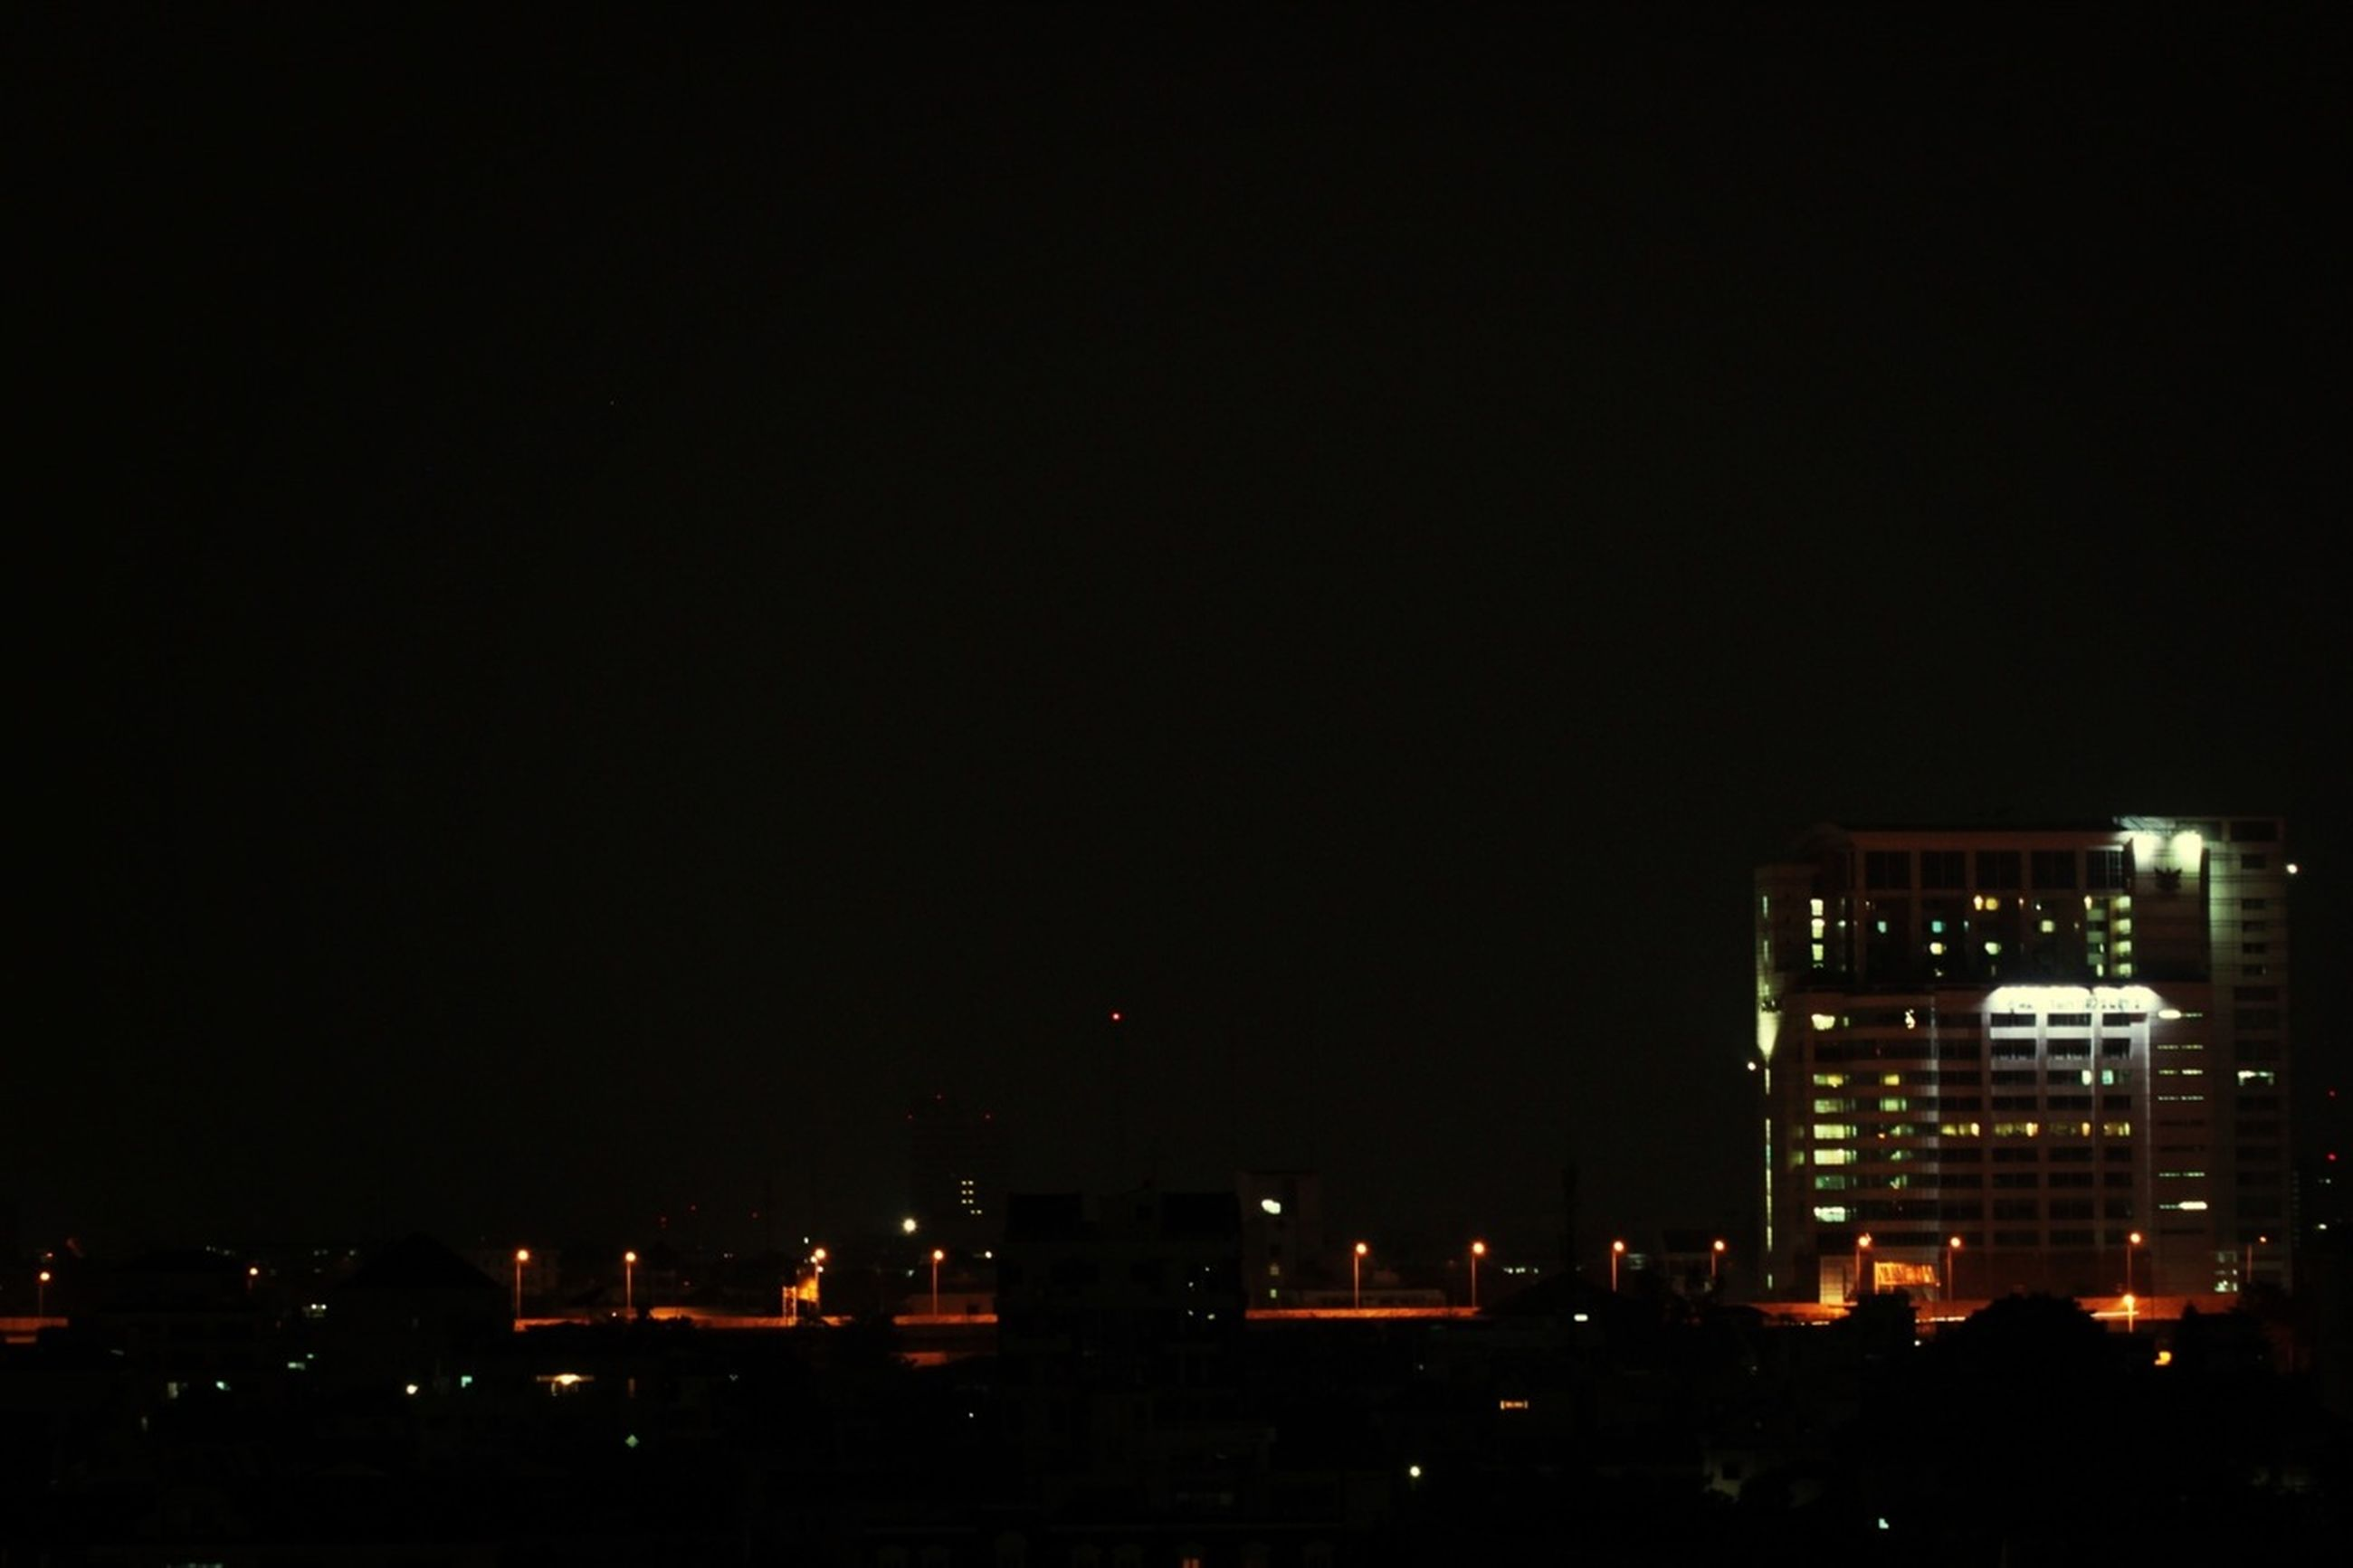 night, building exterior, illuminated, city, architecture, built structure, copy space, cityscape, clear sky, skyscraper, dark, city life, modern, urban skyline, office building, tall - high, tower, residential building, outdoors, building